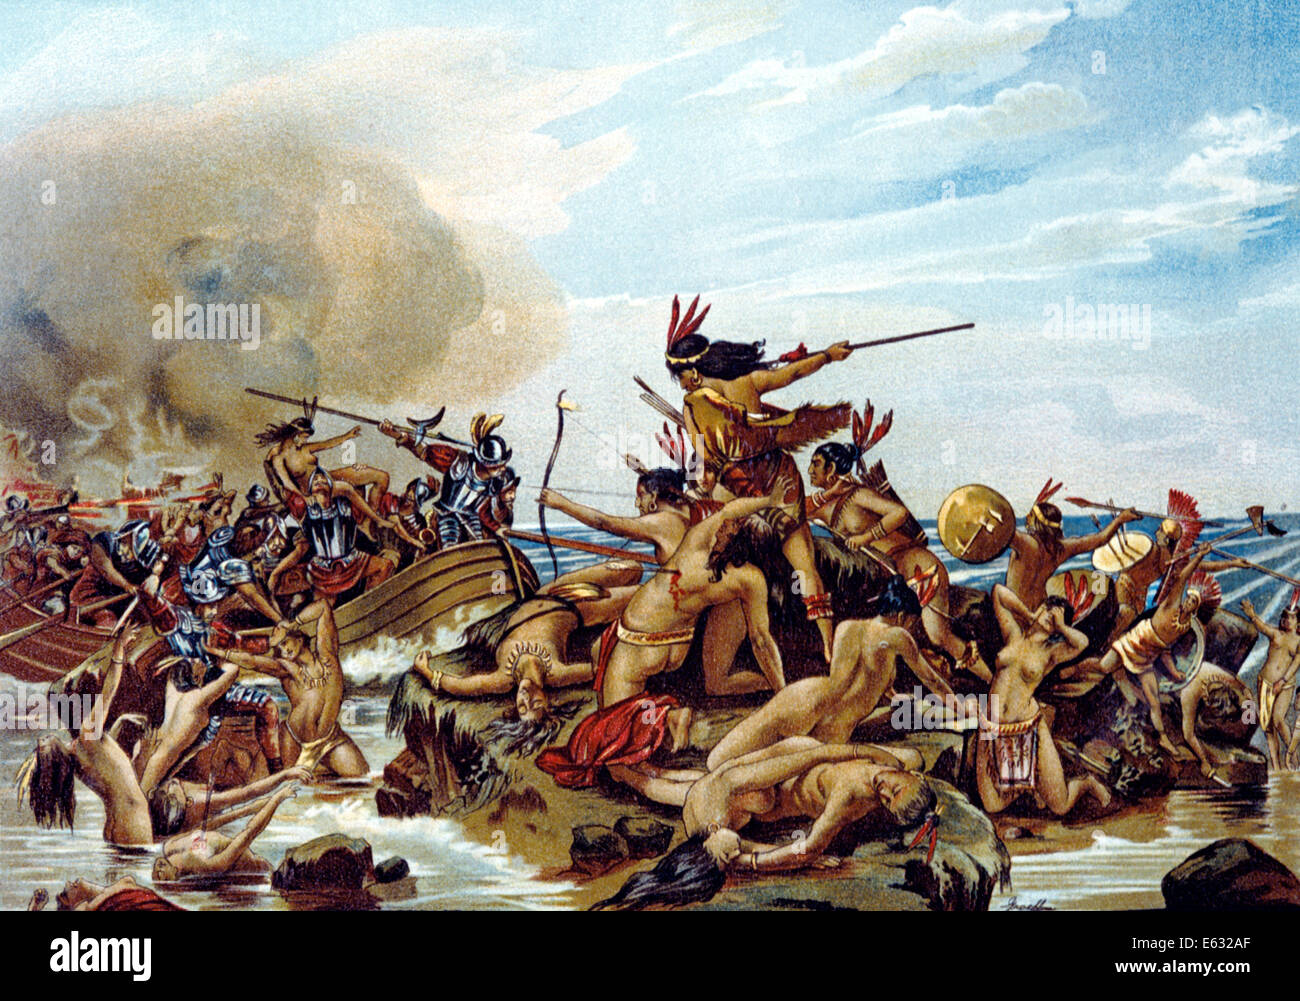 S Early Armored European Explorers Fighting With Native American Stock Photo